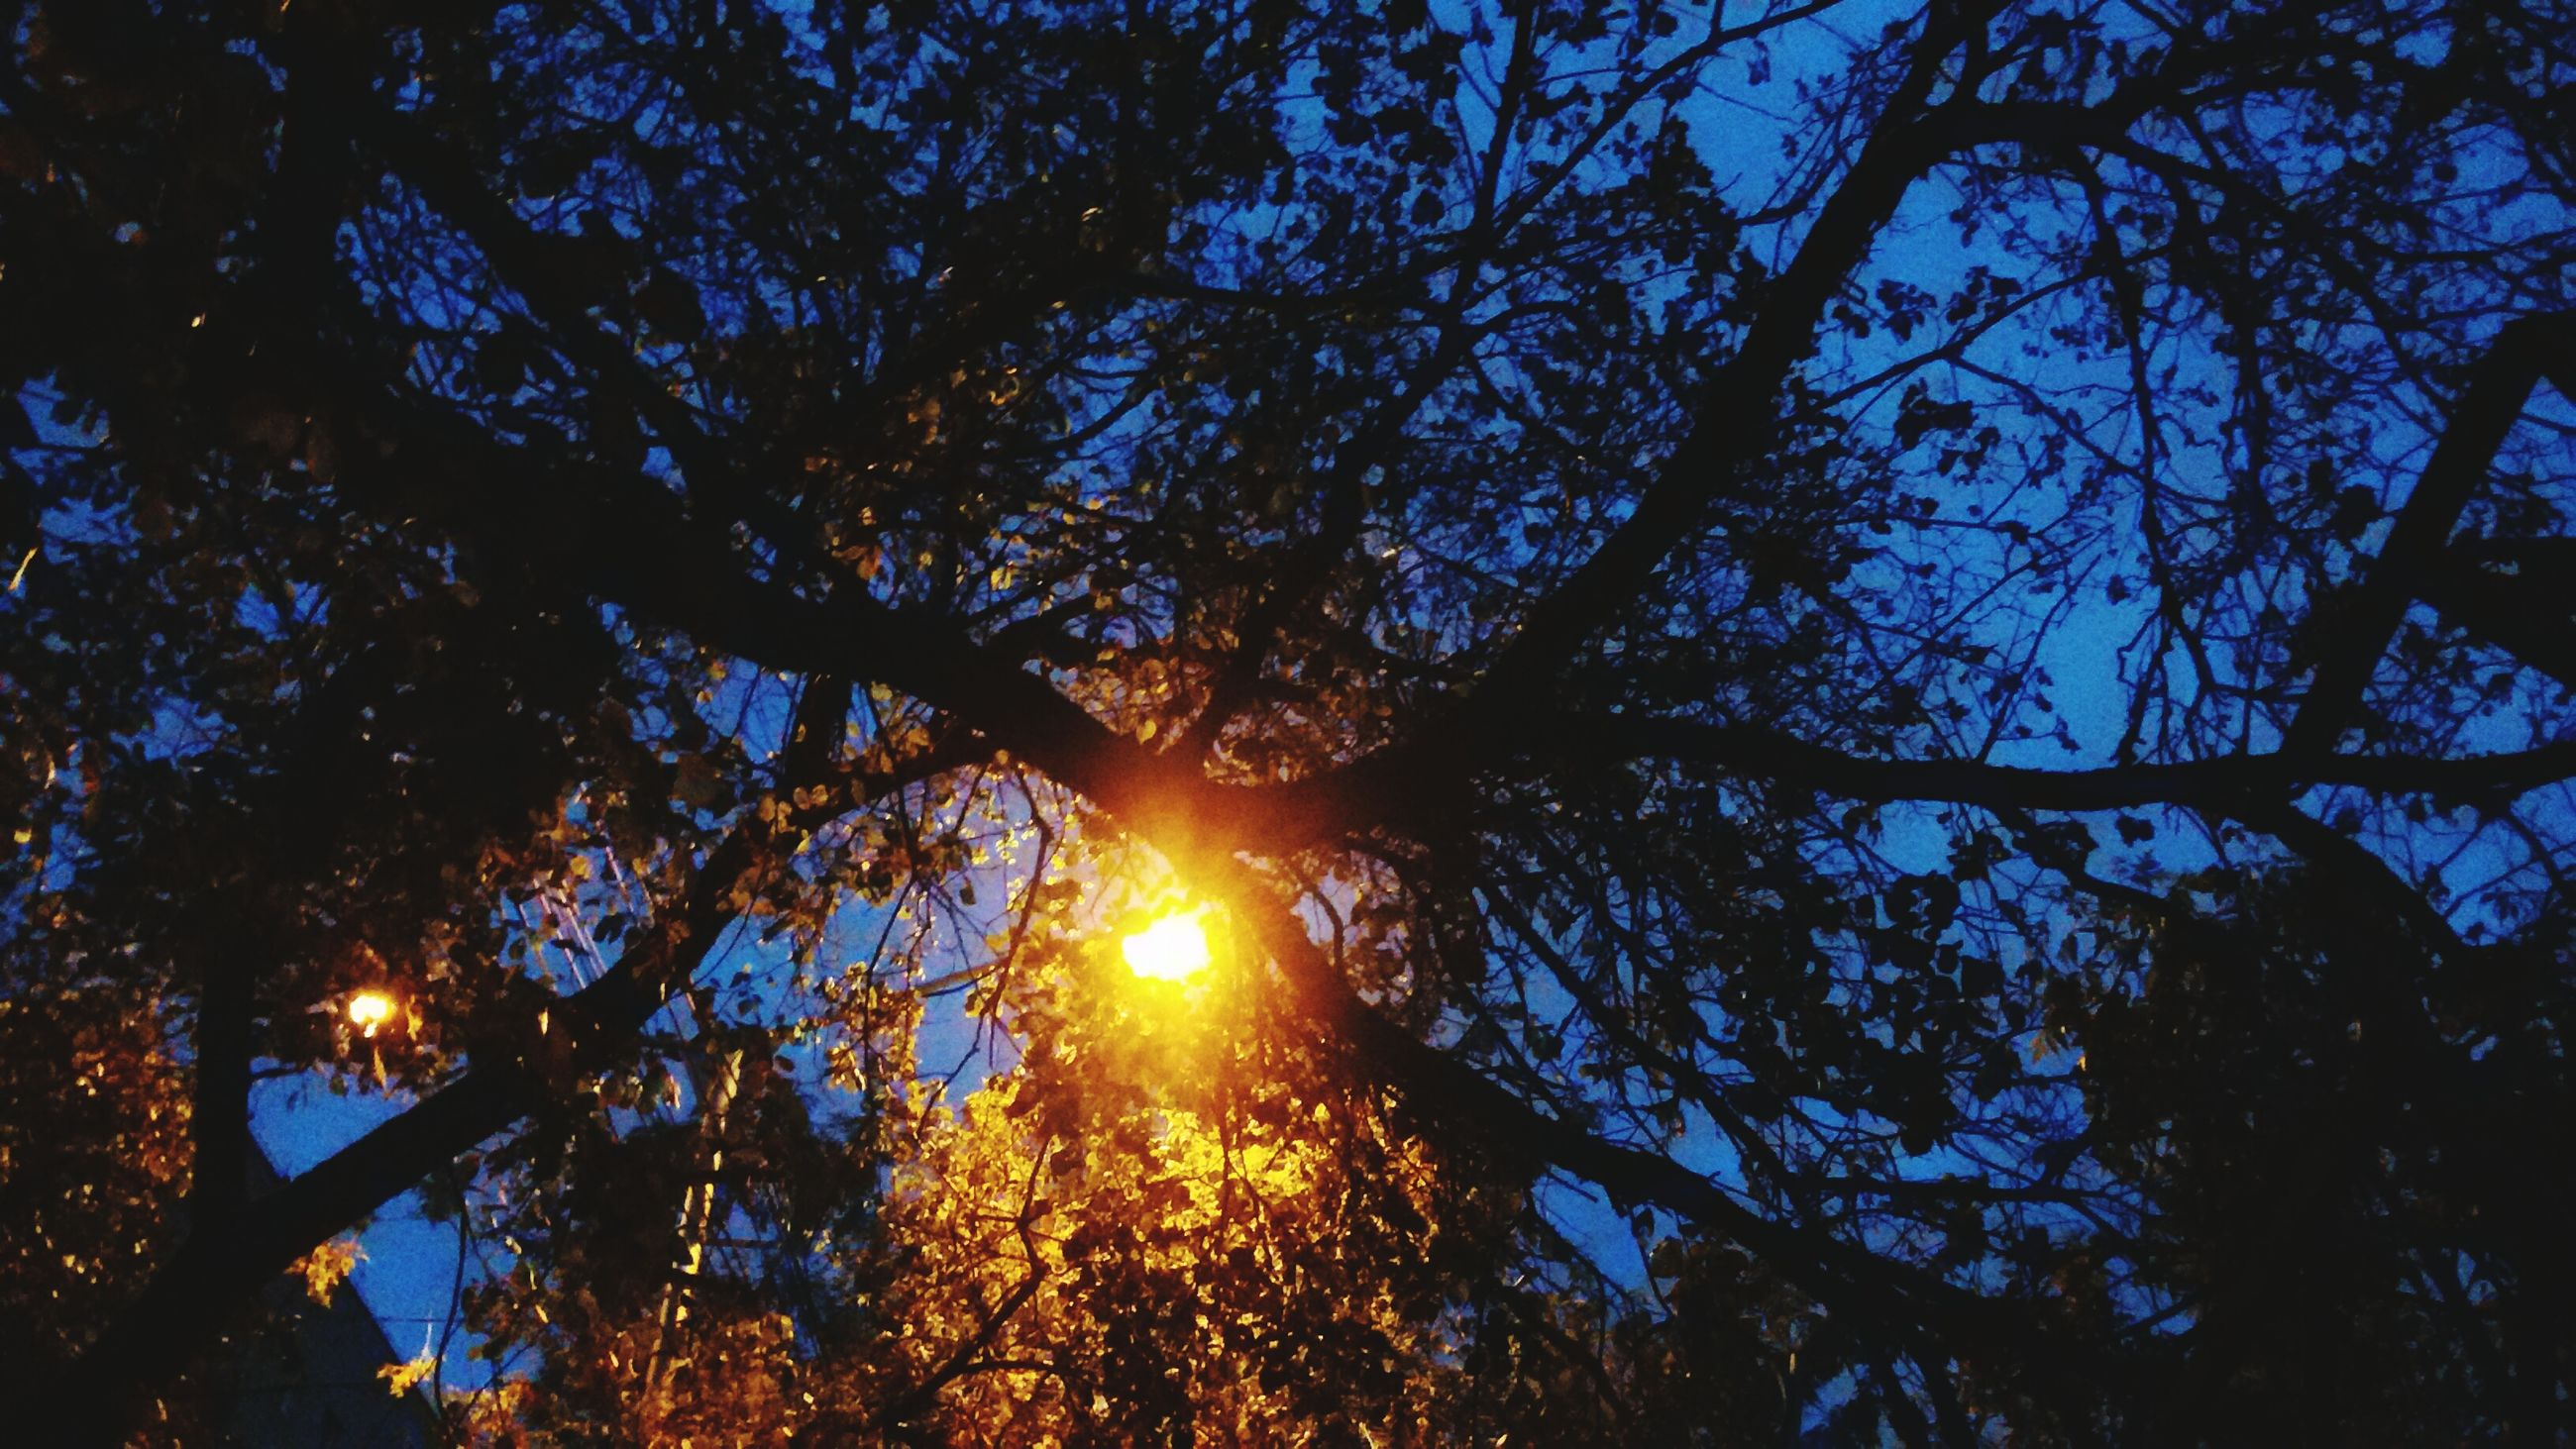 tree, low angle view, branch, growth, sun, nature, tranquility, beauty in nature, sunlight, sunbeam, sky, silhouette, scenics, lens flare, back lit, glowing, outdoors, no people, tree trunk, illuminated